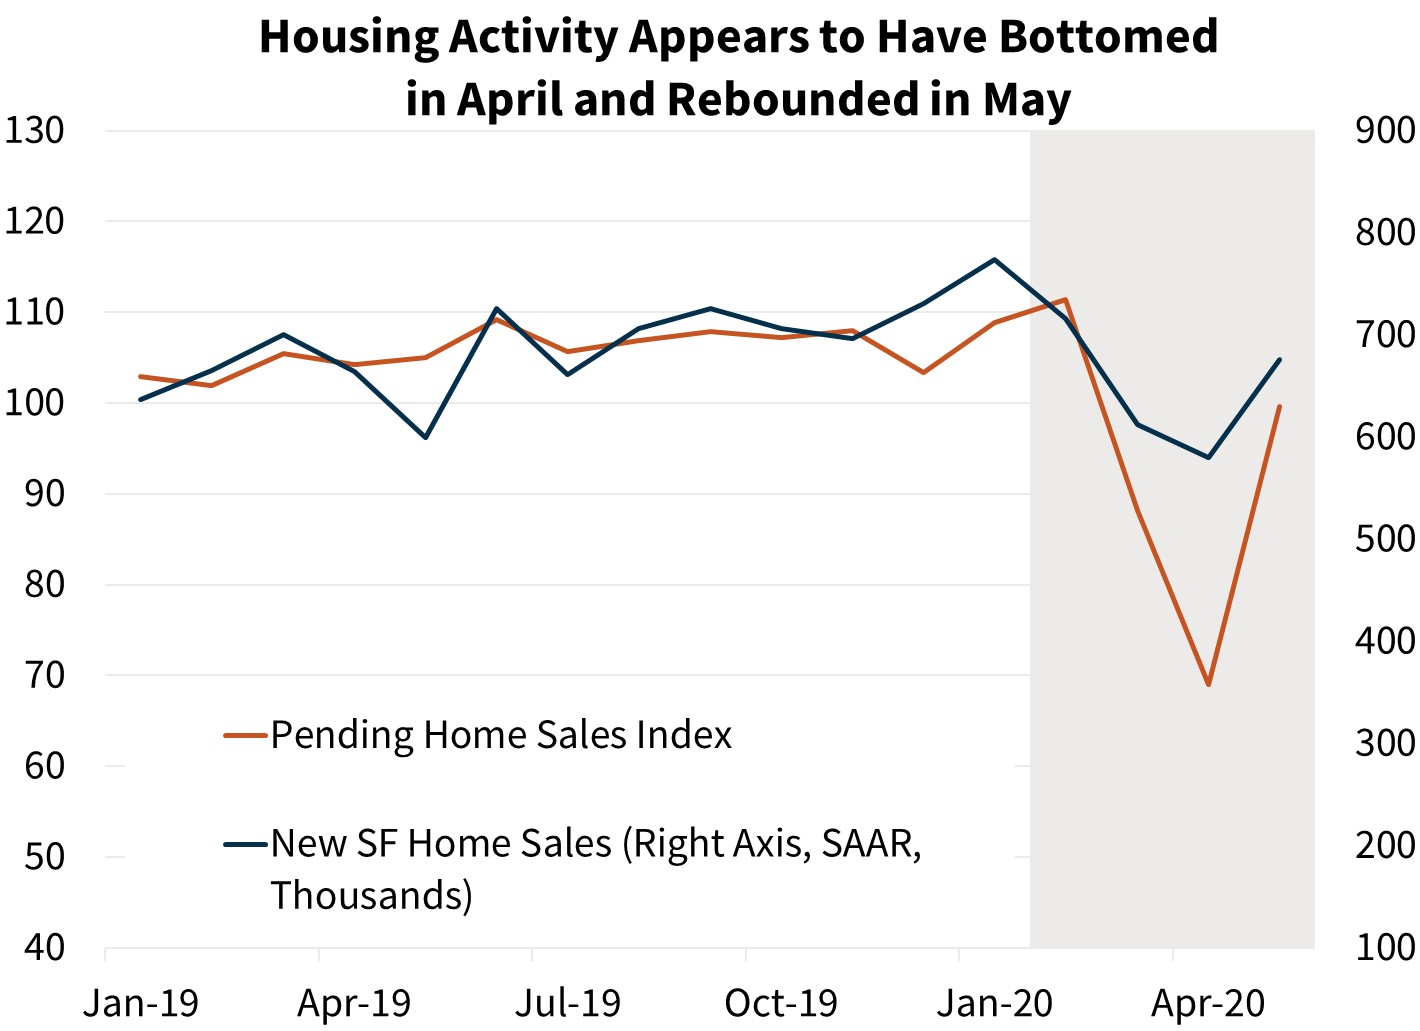 Housing Activity Appears to Have Bottomed in April and Rebounded in May